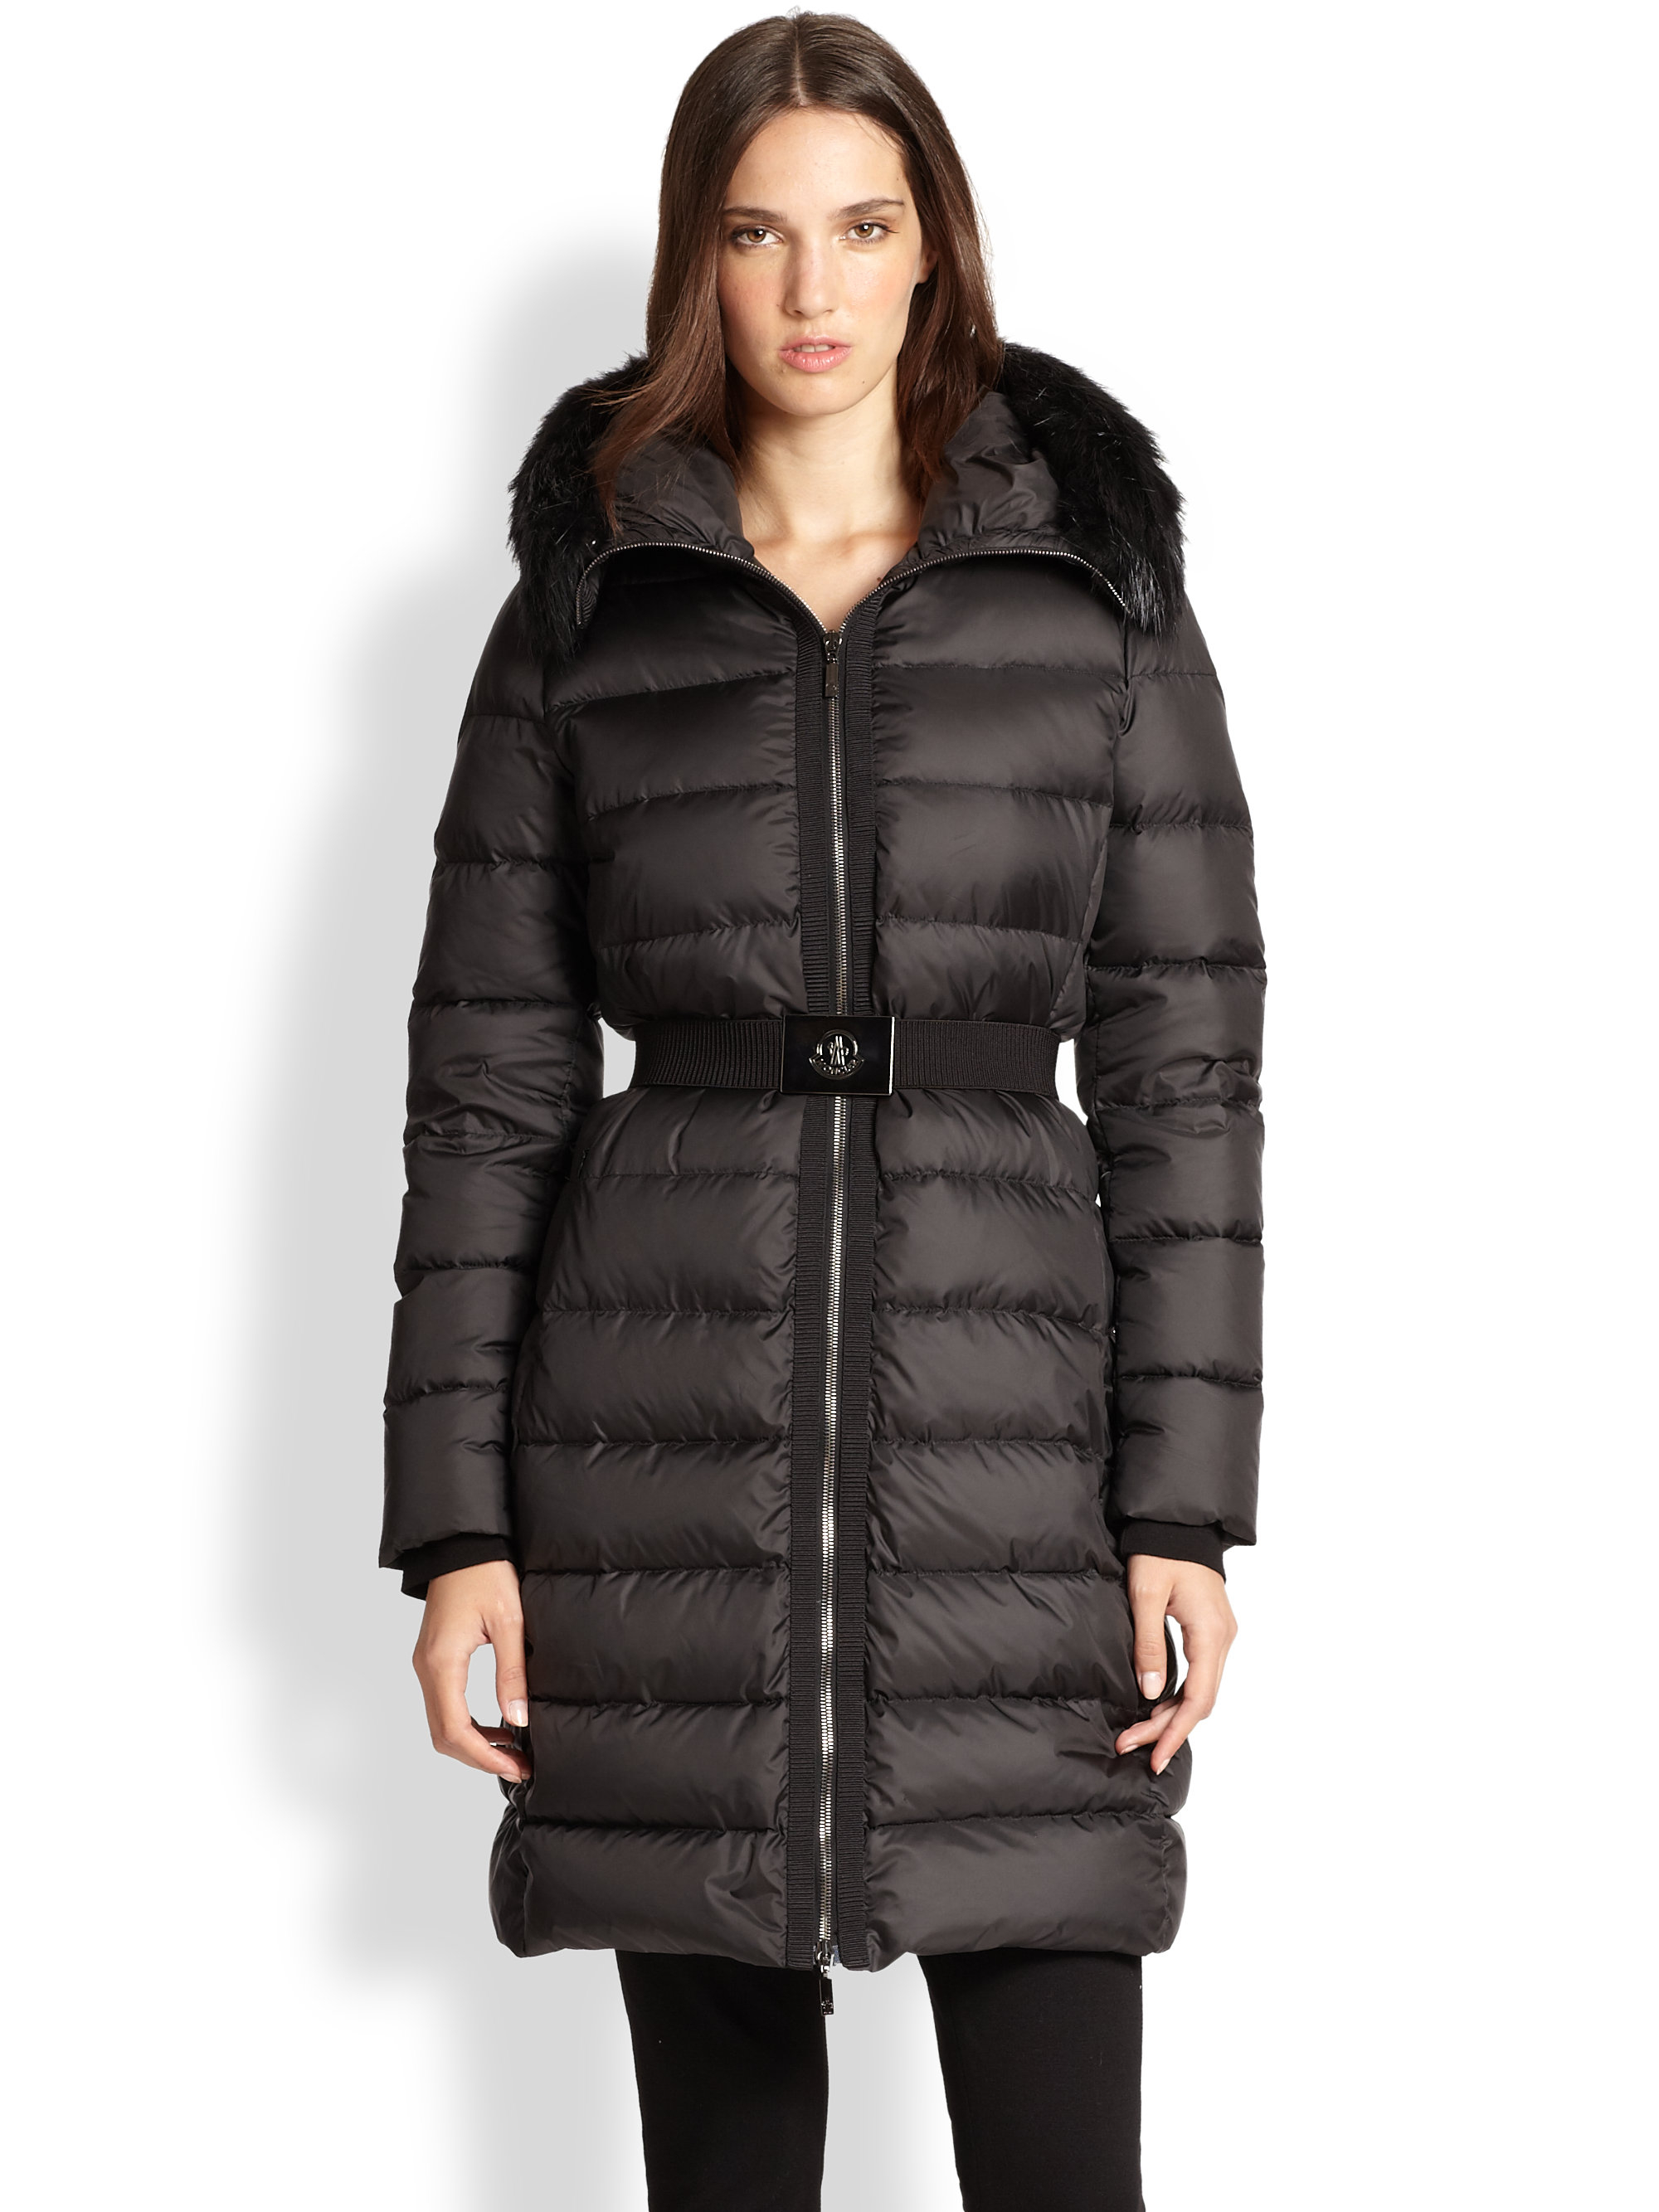 moncler fur trim fabre puffer jacket in black lyst. Black Bedroom Furniture Sets. Home Design Ideas